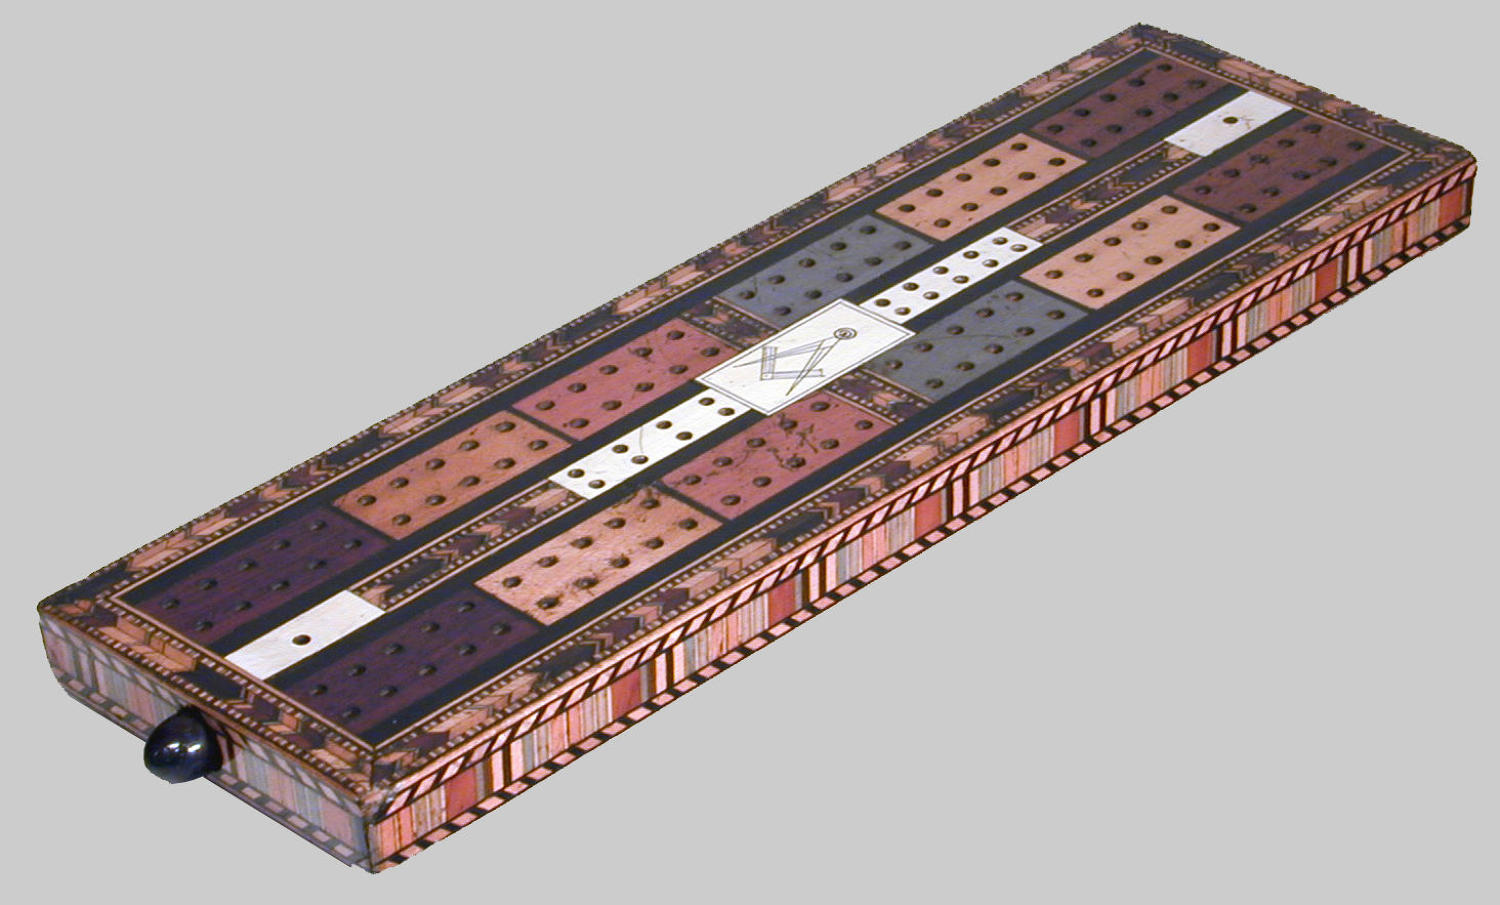 19th century cribbage board with Masonic device